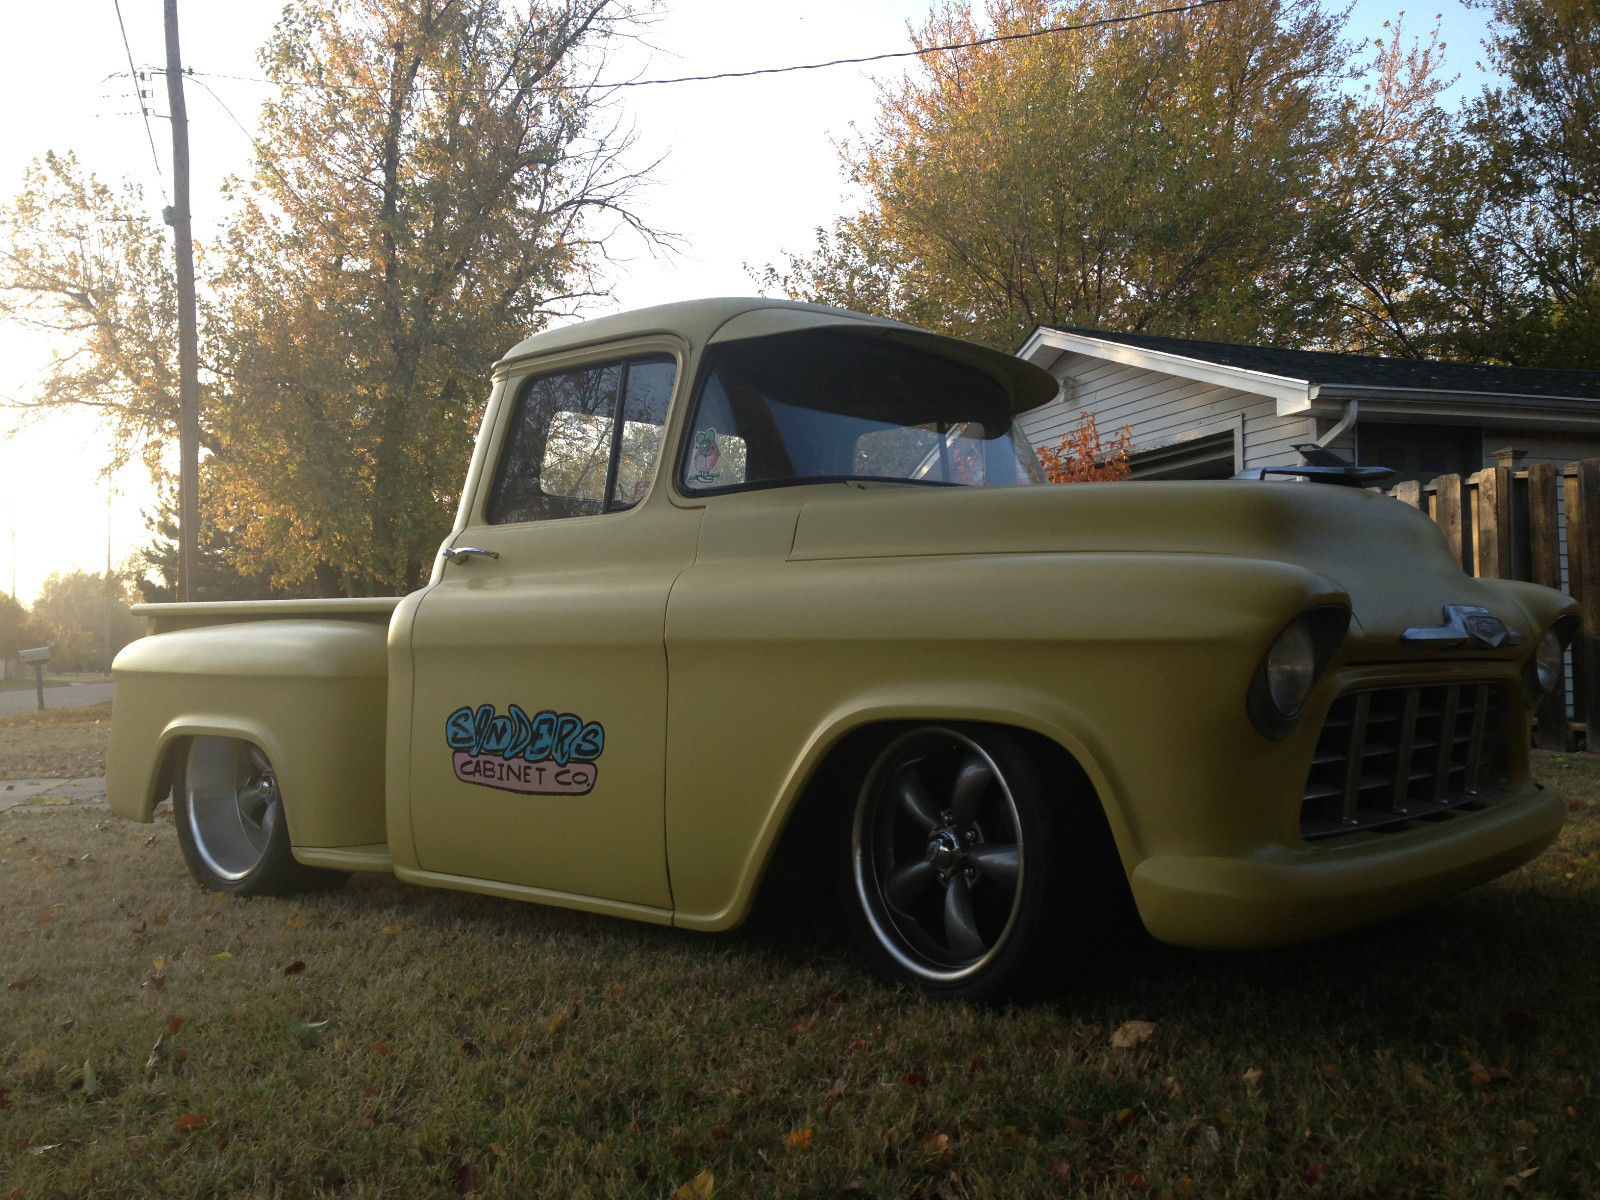 Jenkintown Nissan 56 Chevy Cab For Sale | Autos Post